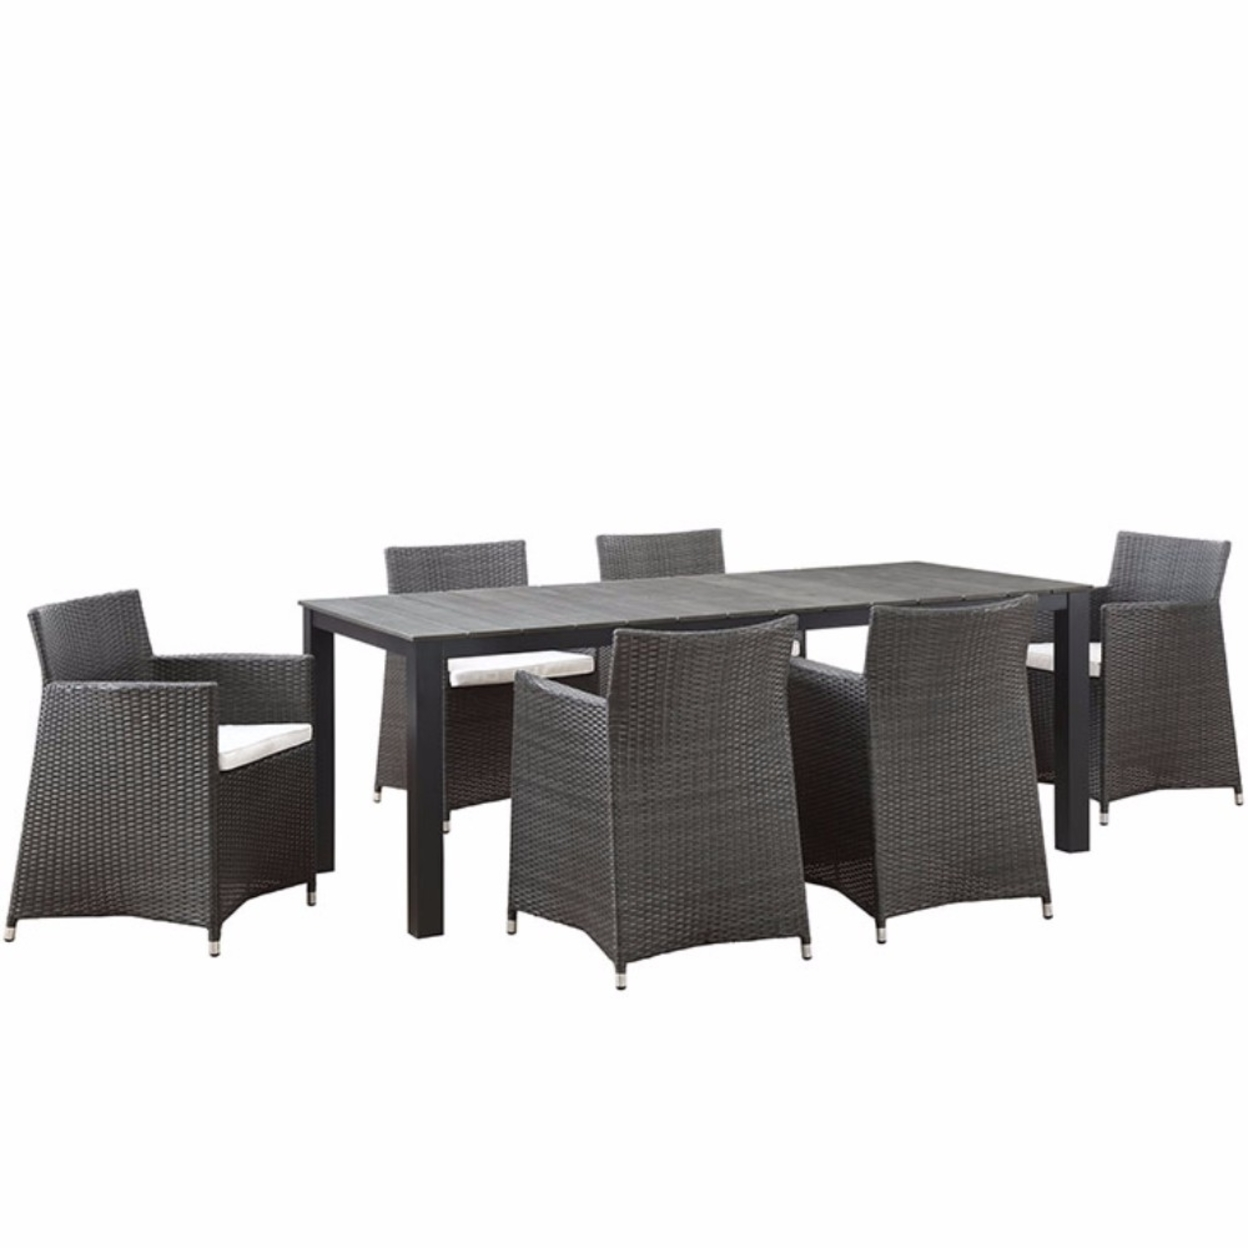 "Junction 7 Piece Outdoor Patio Dining Set, Brown White Size : 81.5""lx126.5\""wx32\""h"